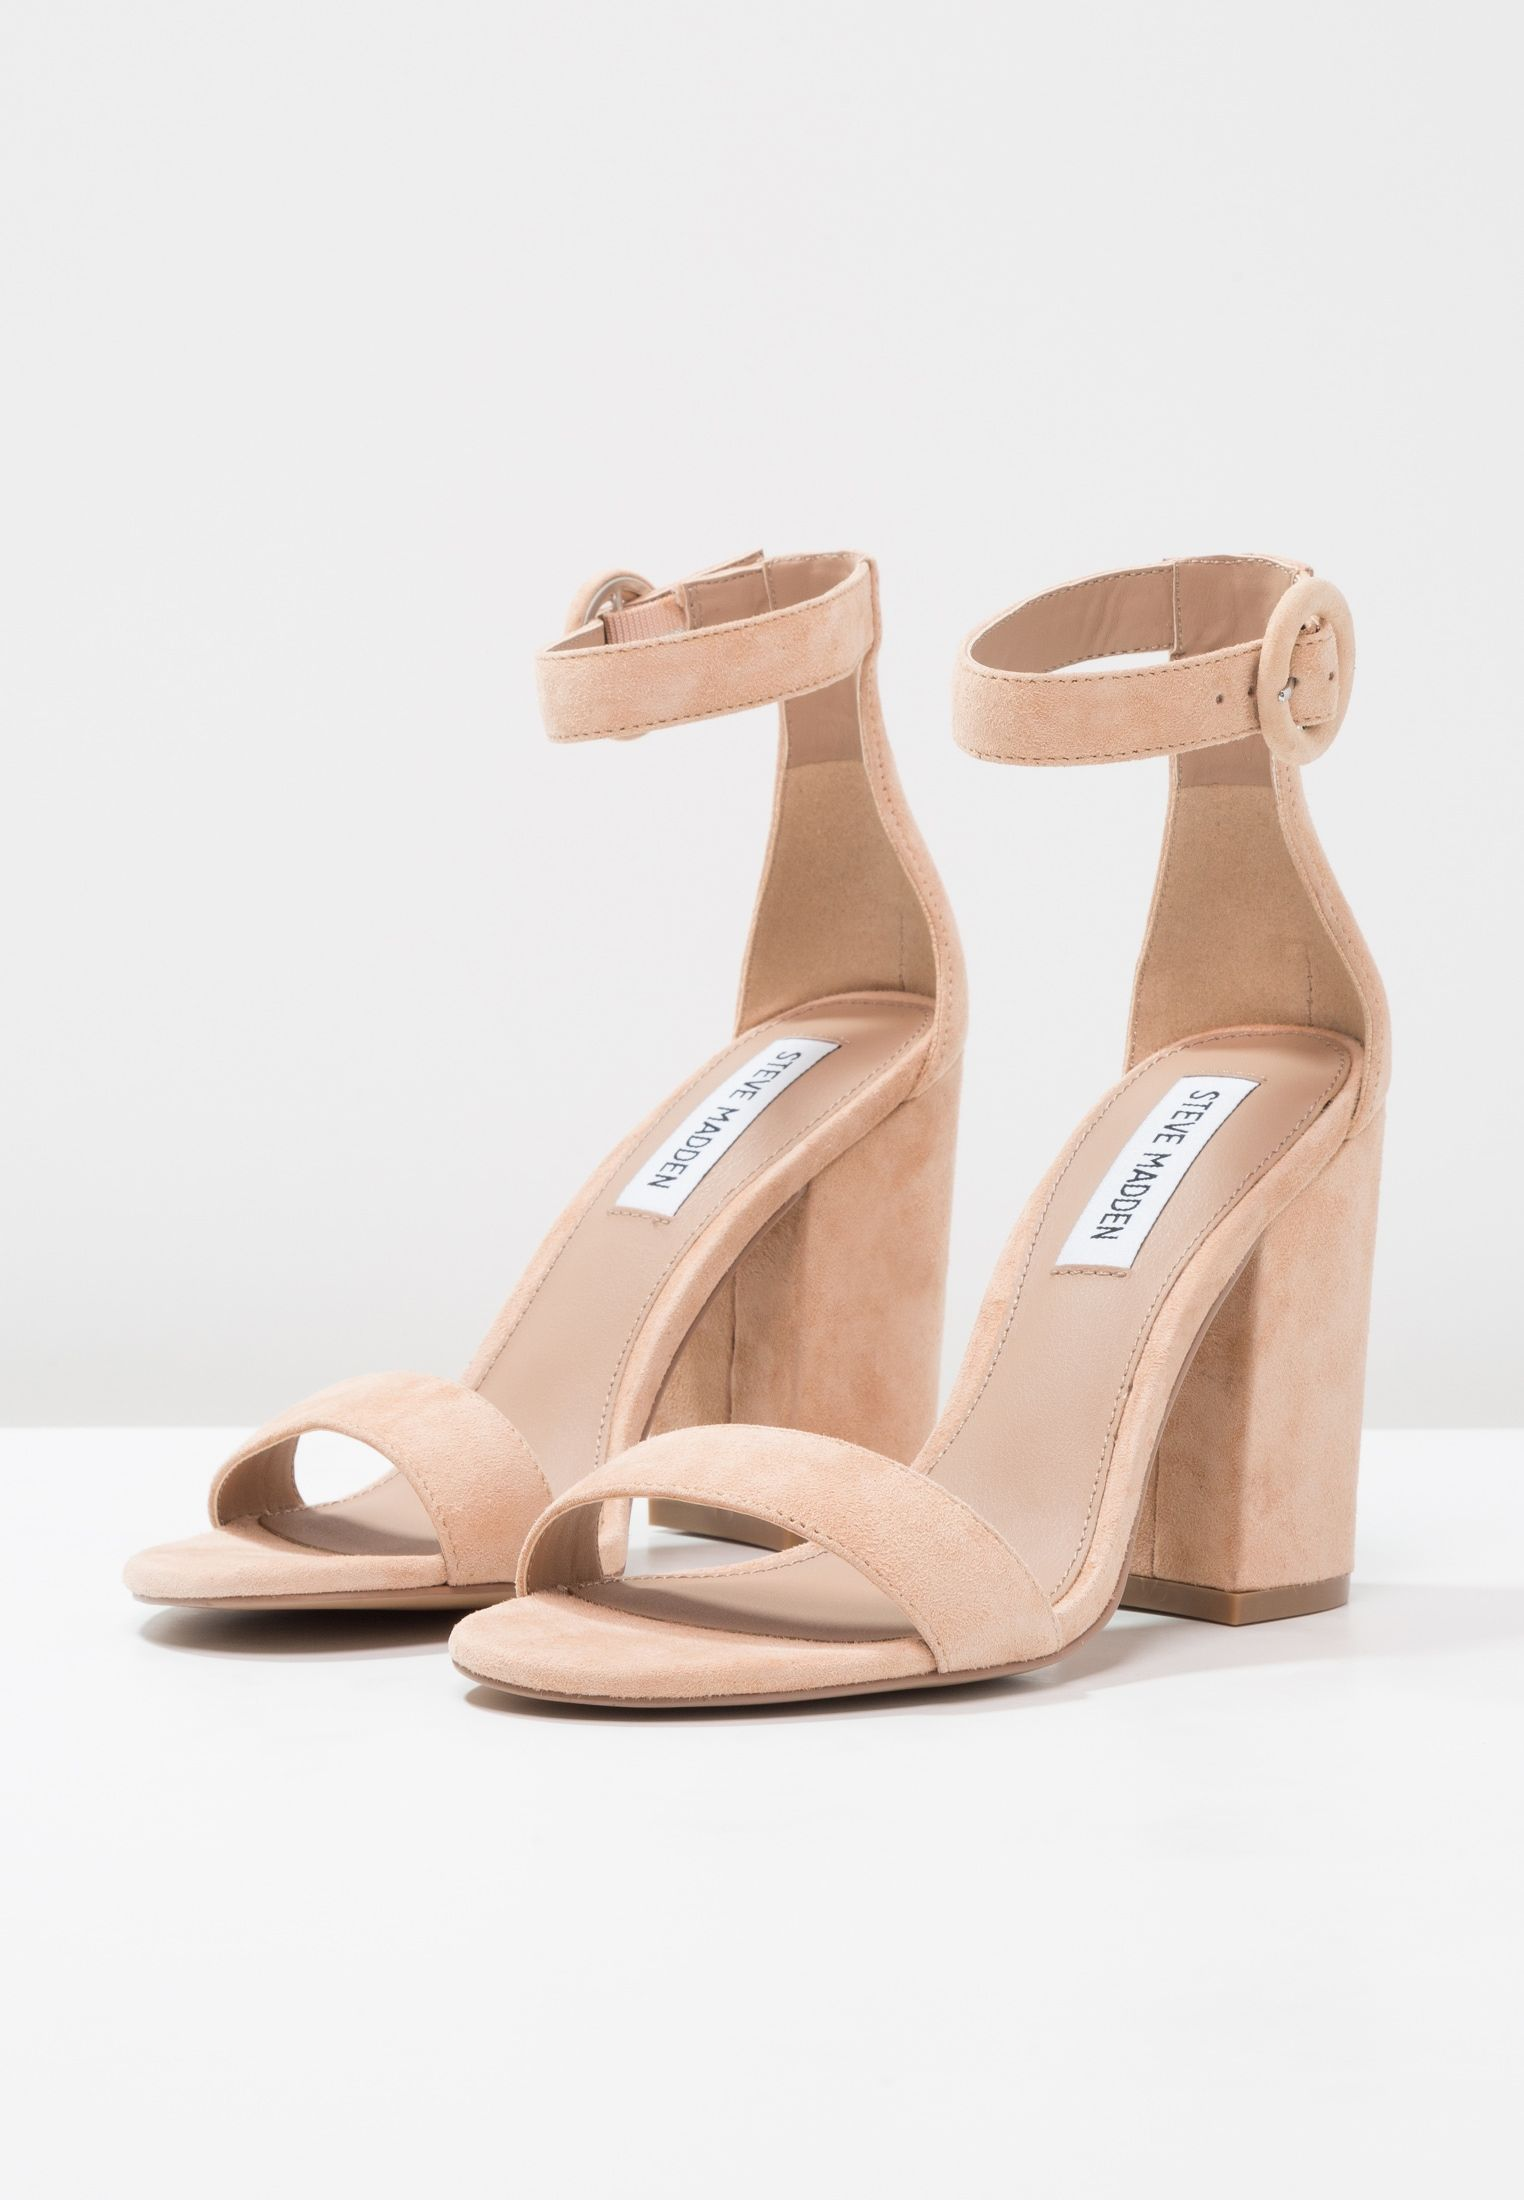 3099db5f150c97 Steve Madden FRIDAY - High Heel Sandaletten - blush - Zalando.de ...